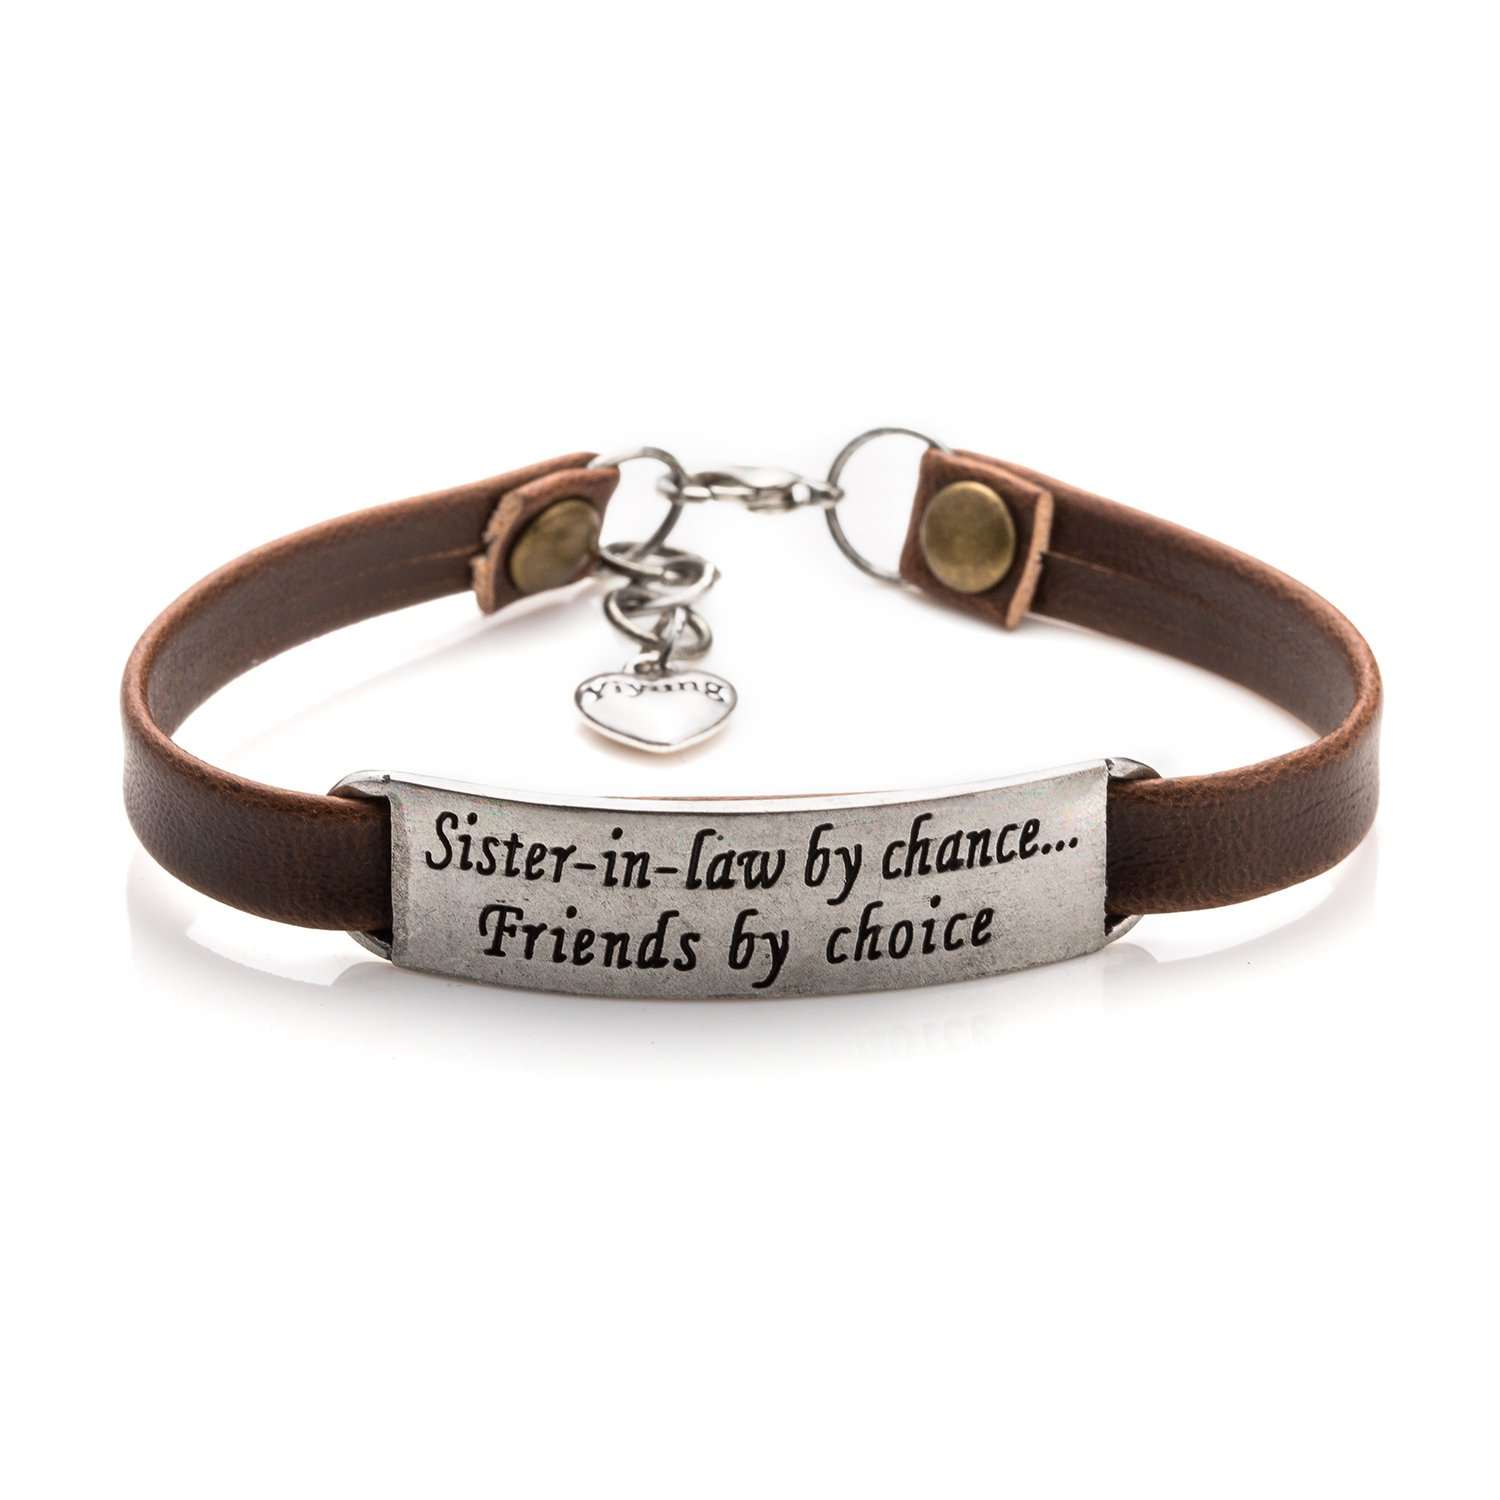 Sister of the Groom Bracelet Wedding Gifts Inspirational Engraved Jewelry for Friends(Sister-in law Brown)